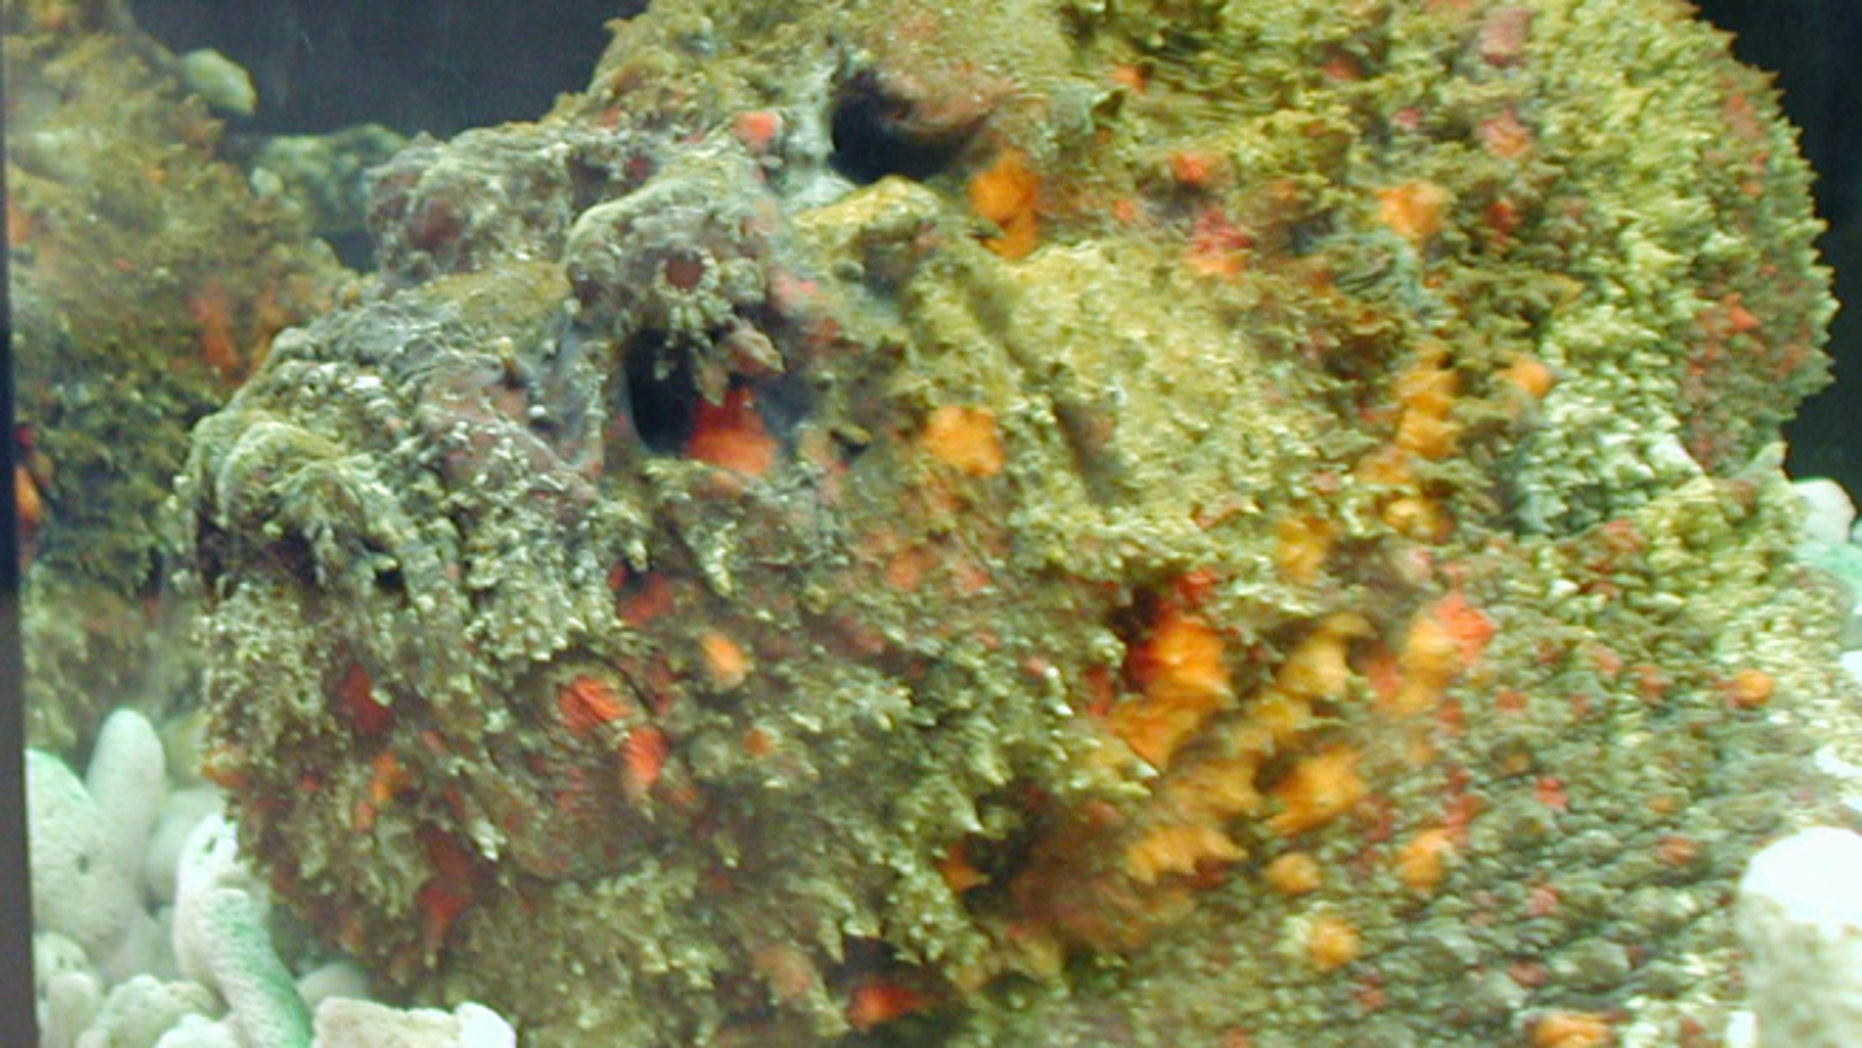 The stonefish's body is designed to camouflage itself against natural predators. It is able to camoflauge itself so well that swimmers may not notice them and step on them causing them to sting the unfortunate swimmer with a deadly venom.